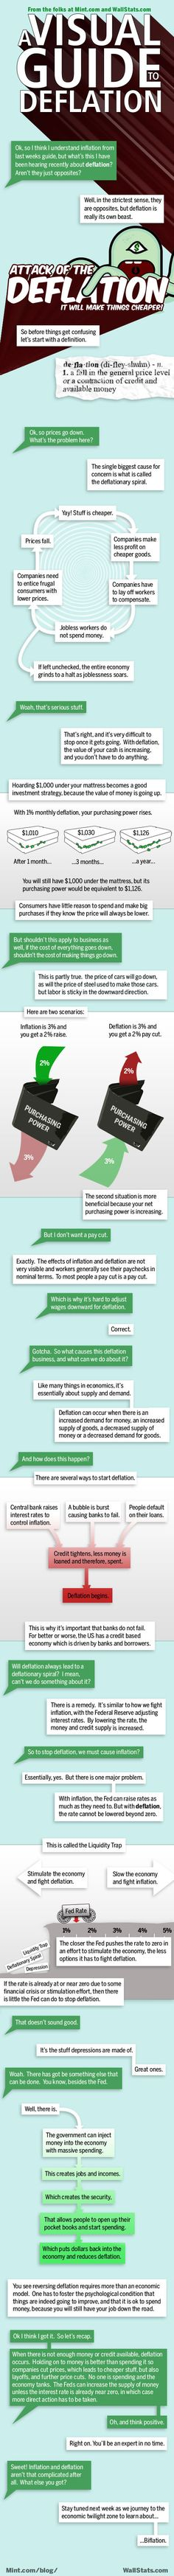 A very visual but very long guide to deflation